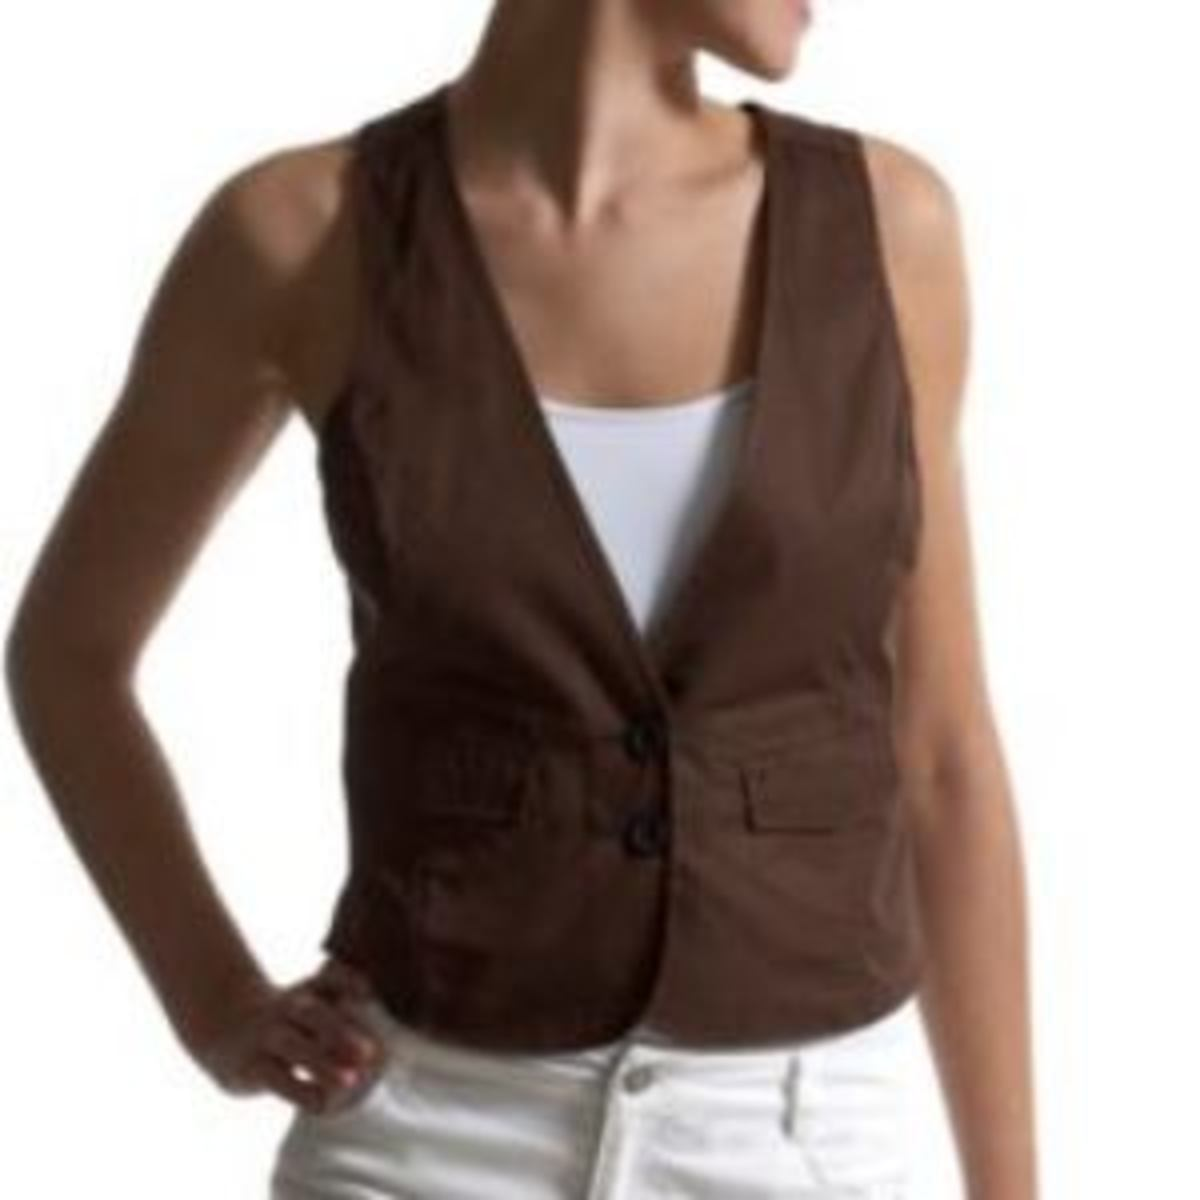 sewing-instructions-for-women-waistcoats-tops-vests